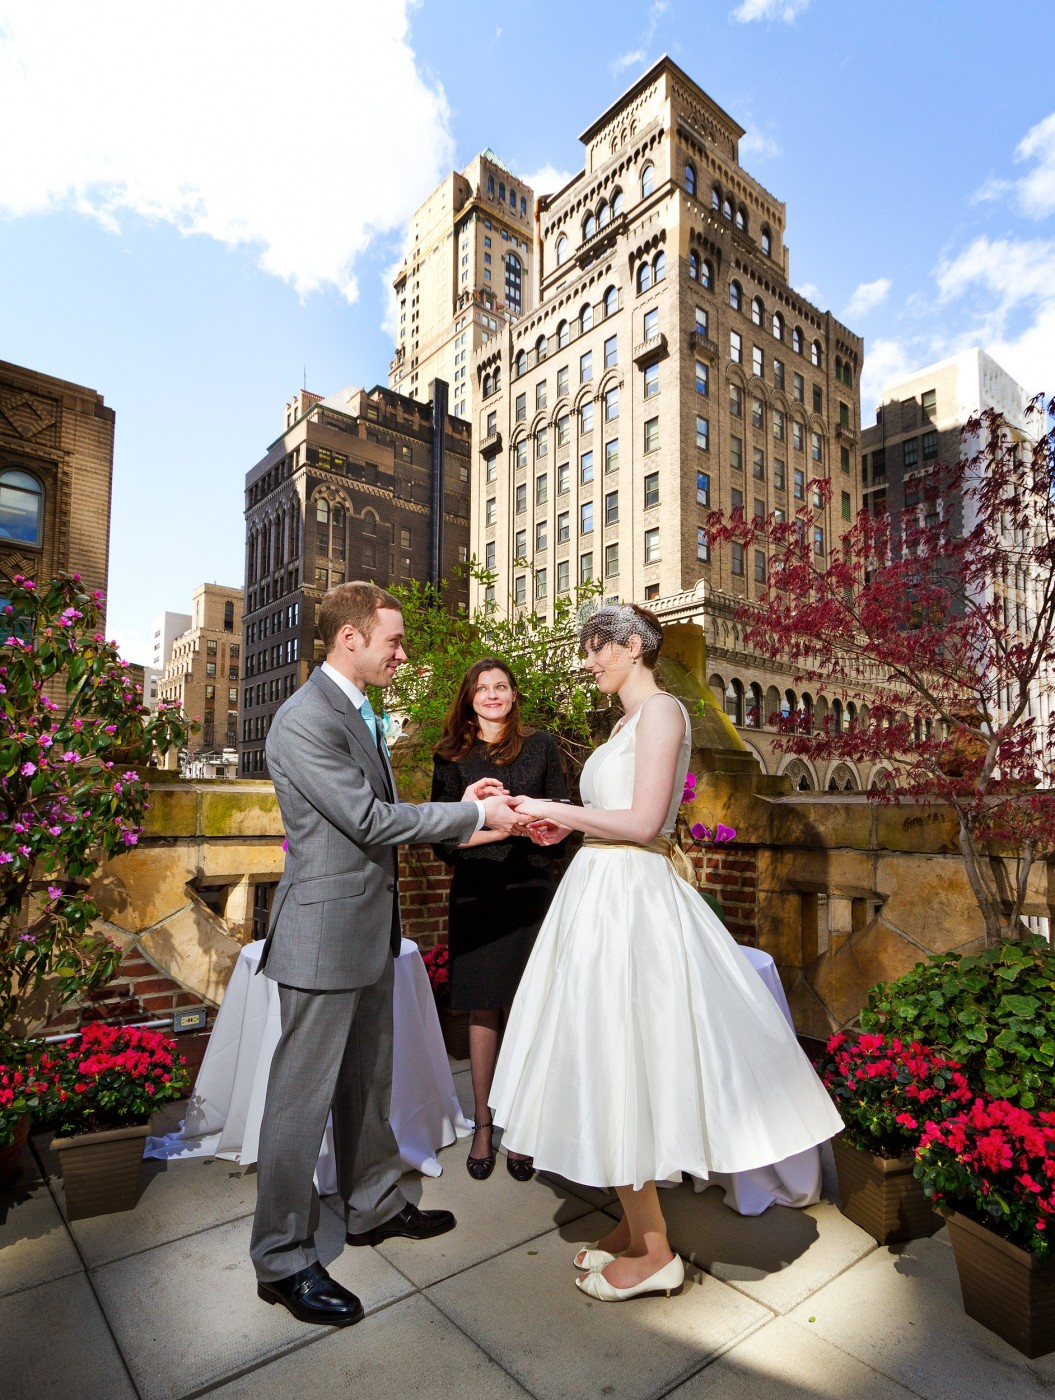 The Poetry Garden Has Been Venue To Many Beautiful Intimate Nyc Weddings